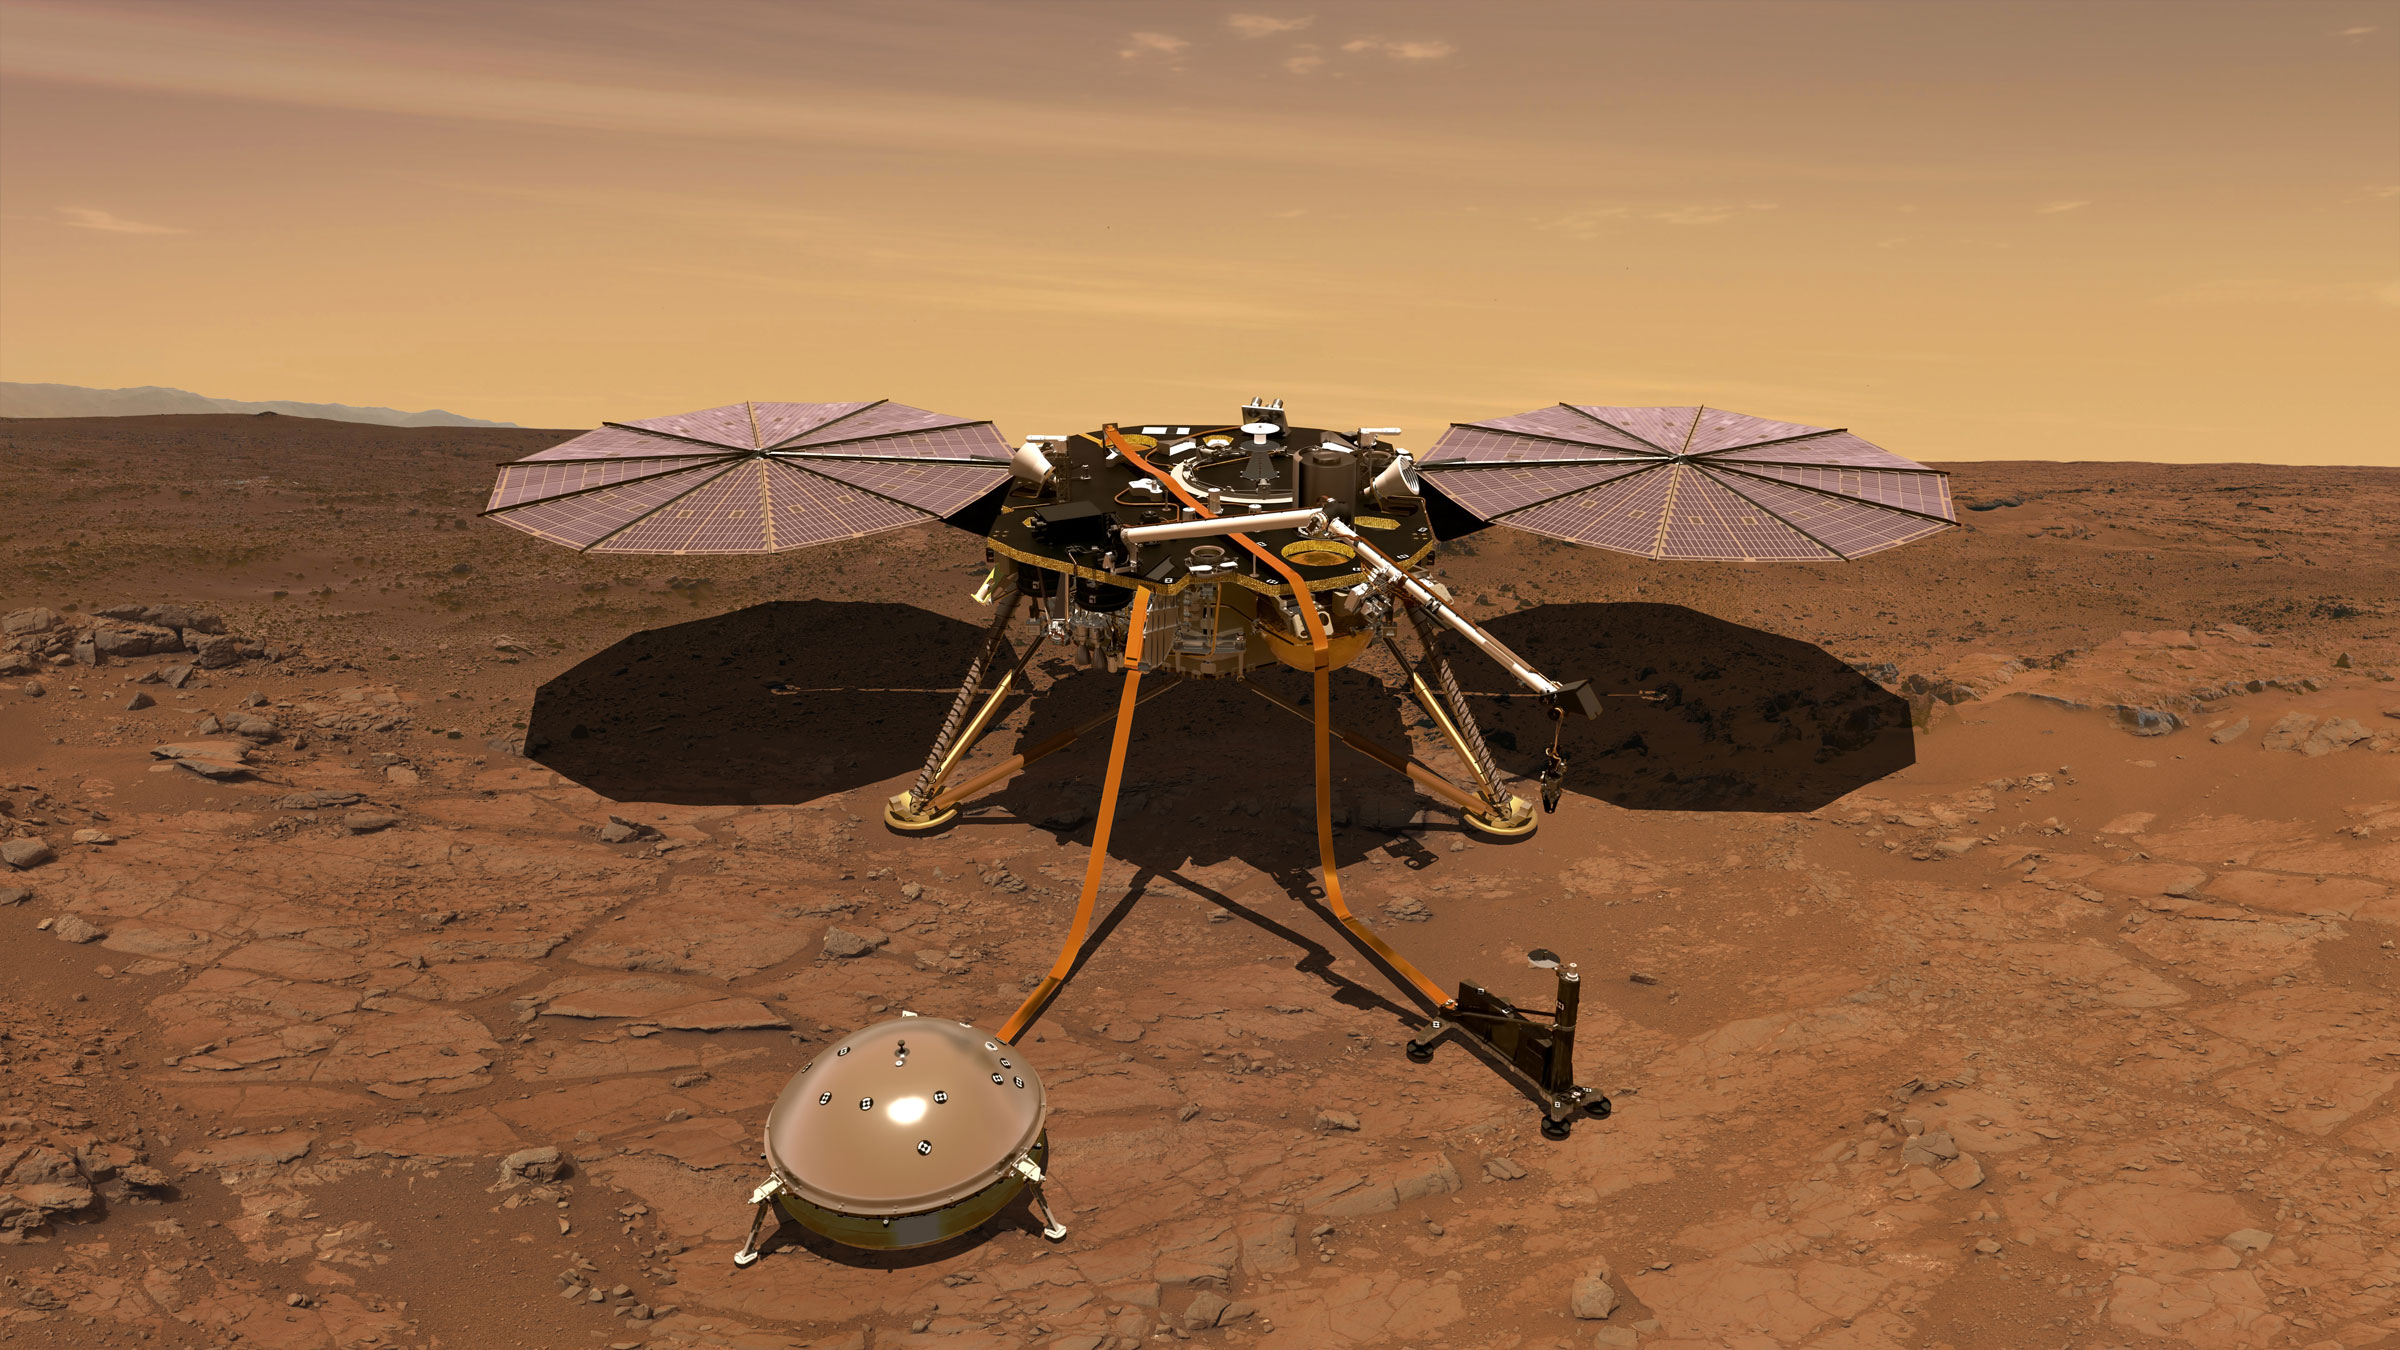 An artist's conception of the Insight Mars lander carrying out surface operations.